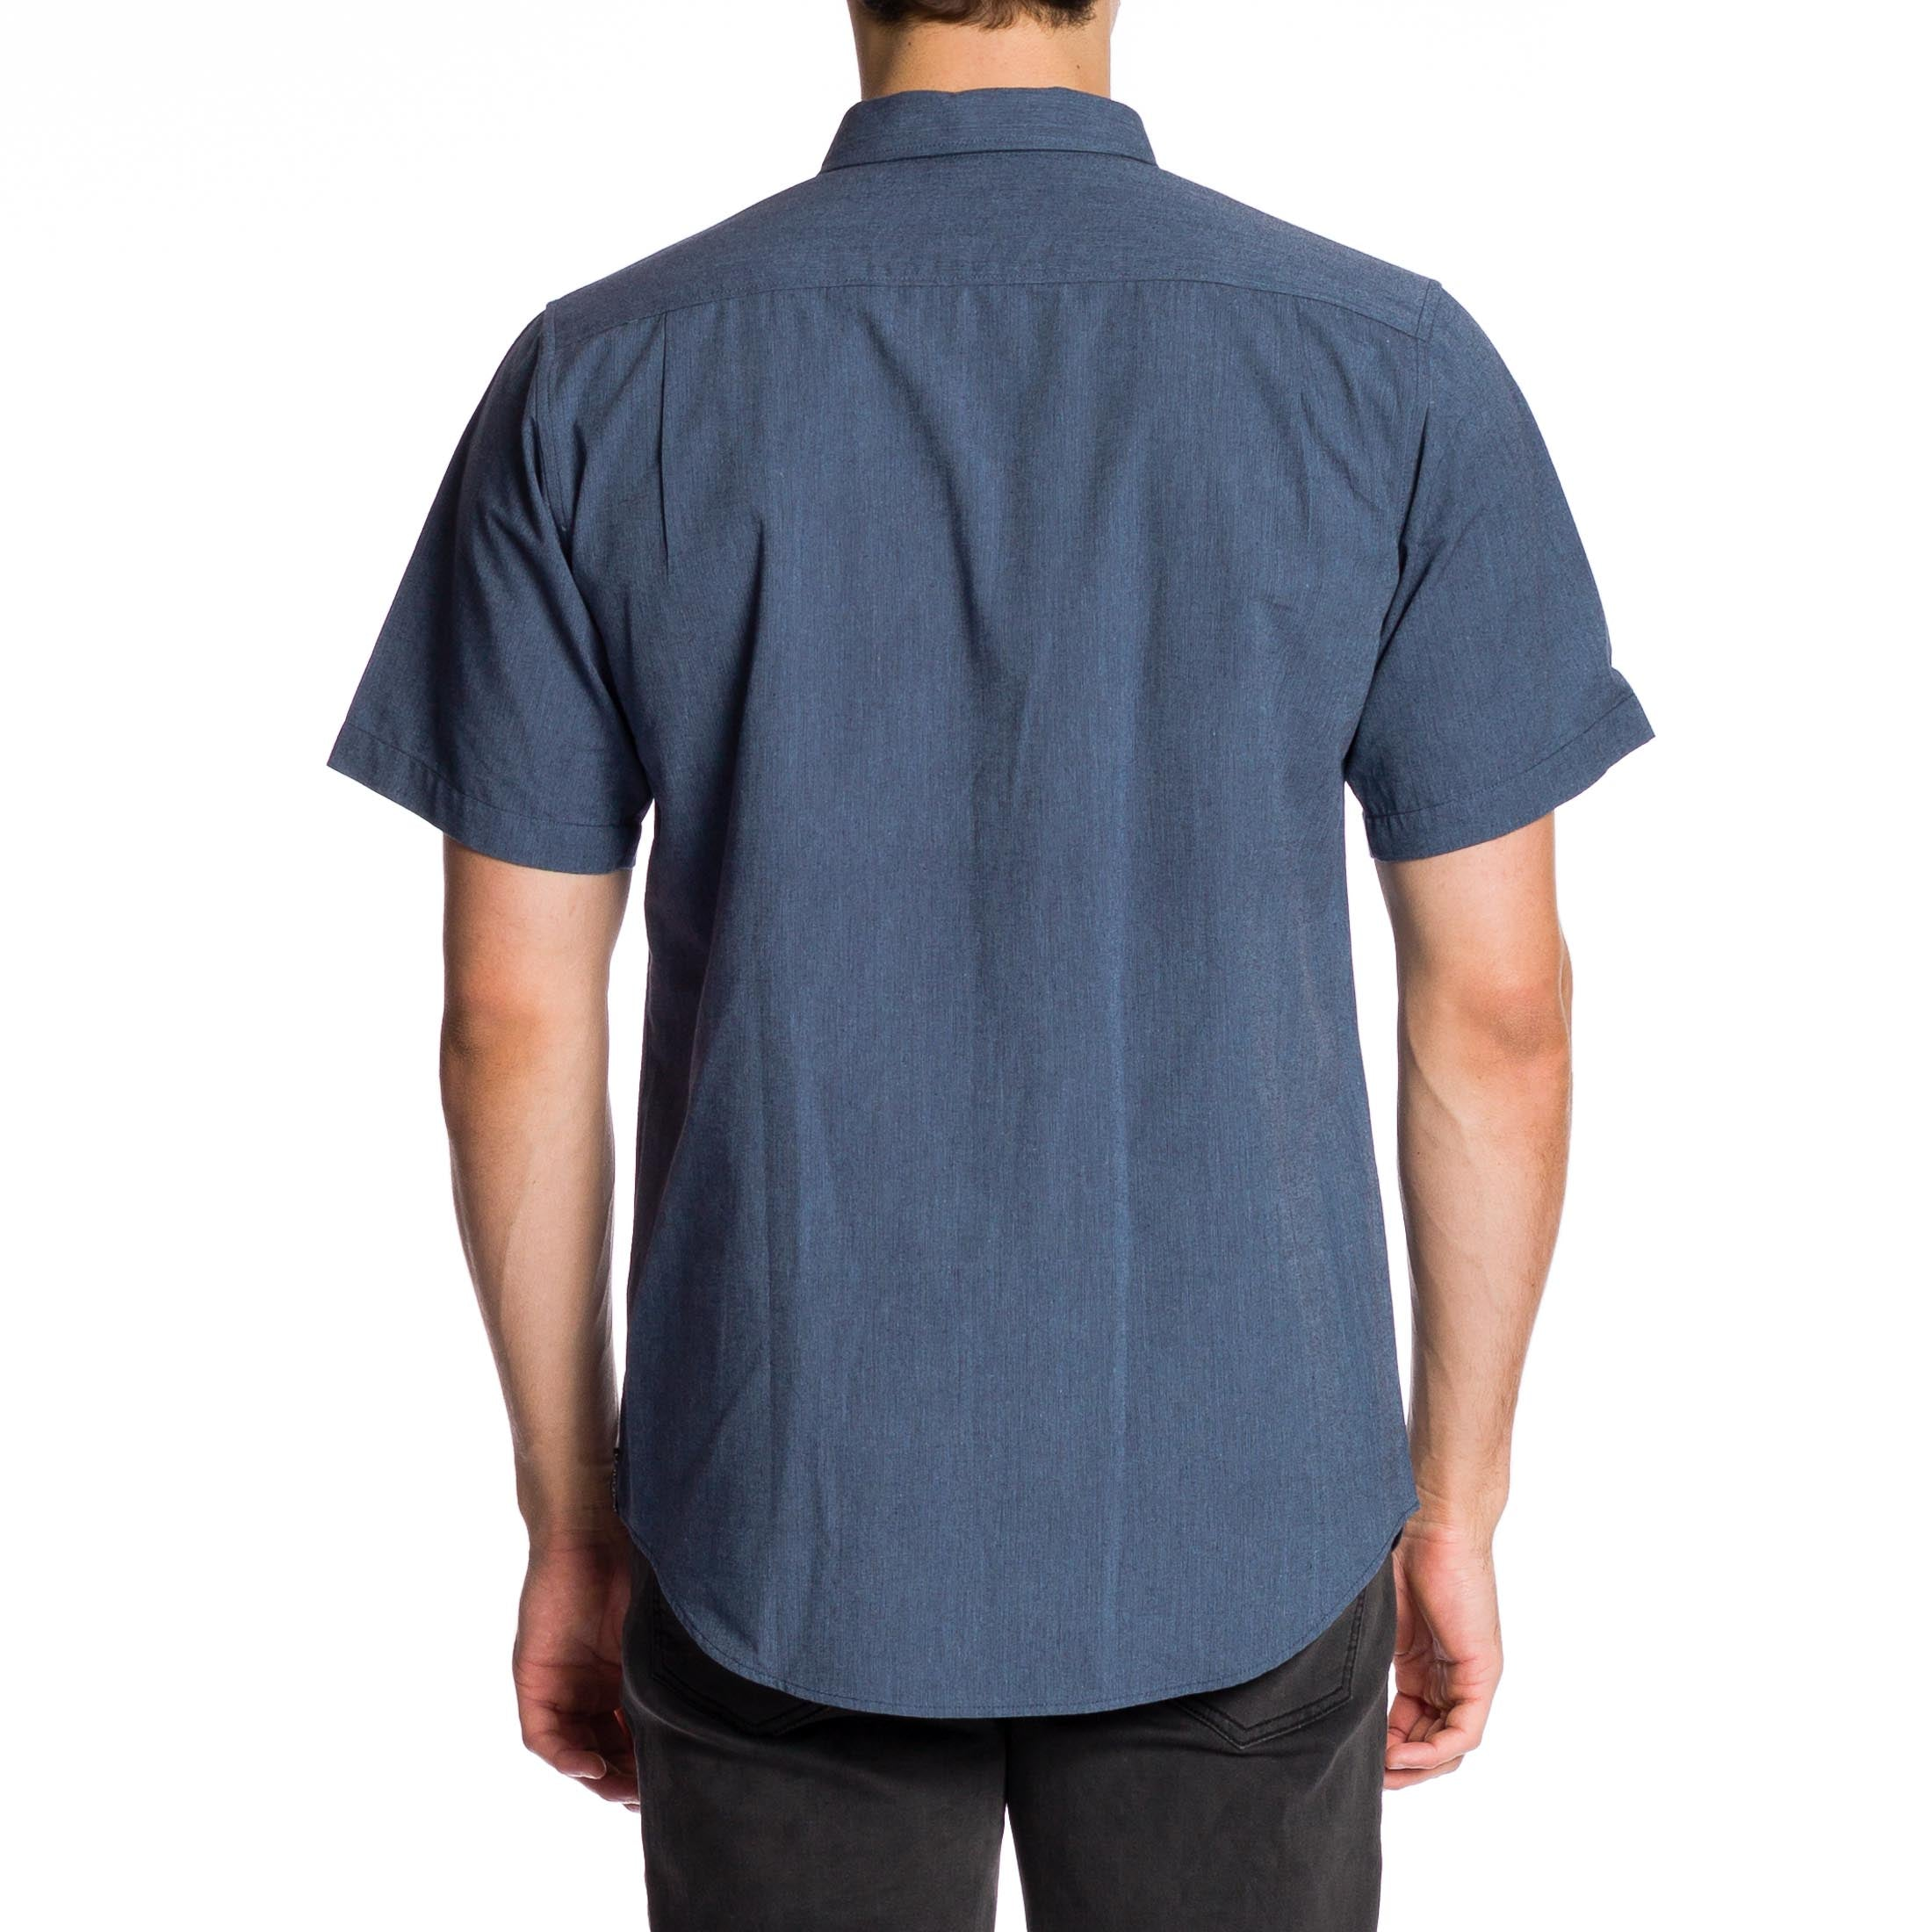 Smiths Short Sleeve Shirt - Blue